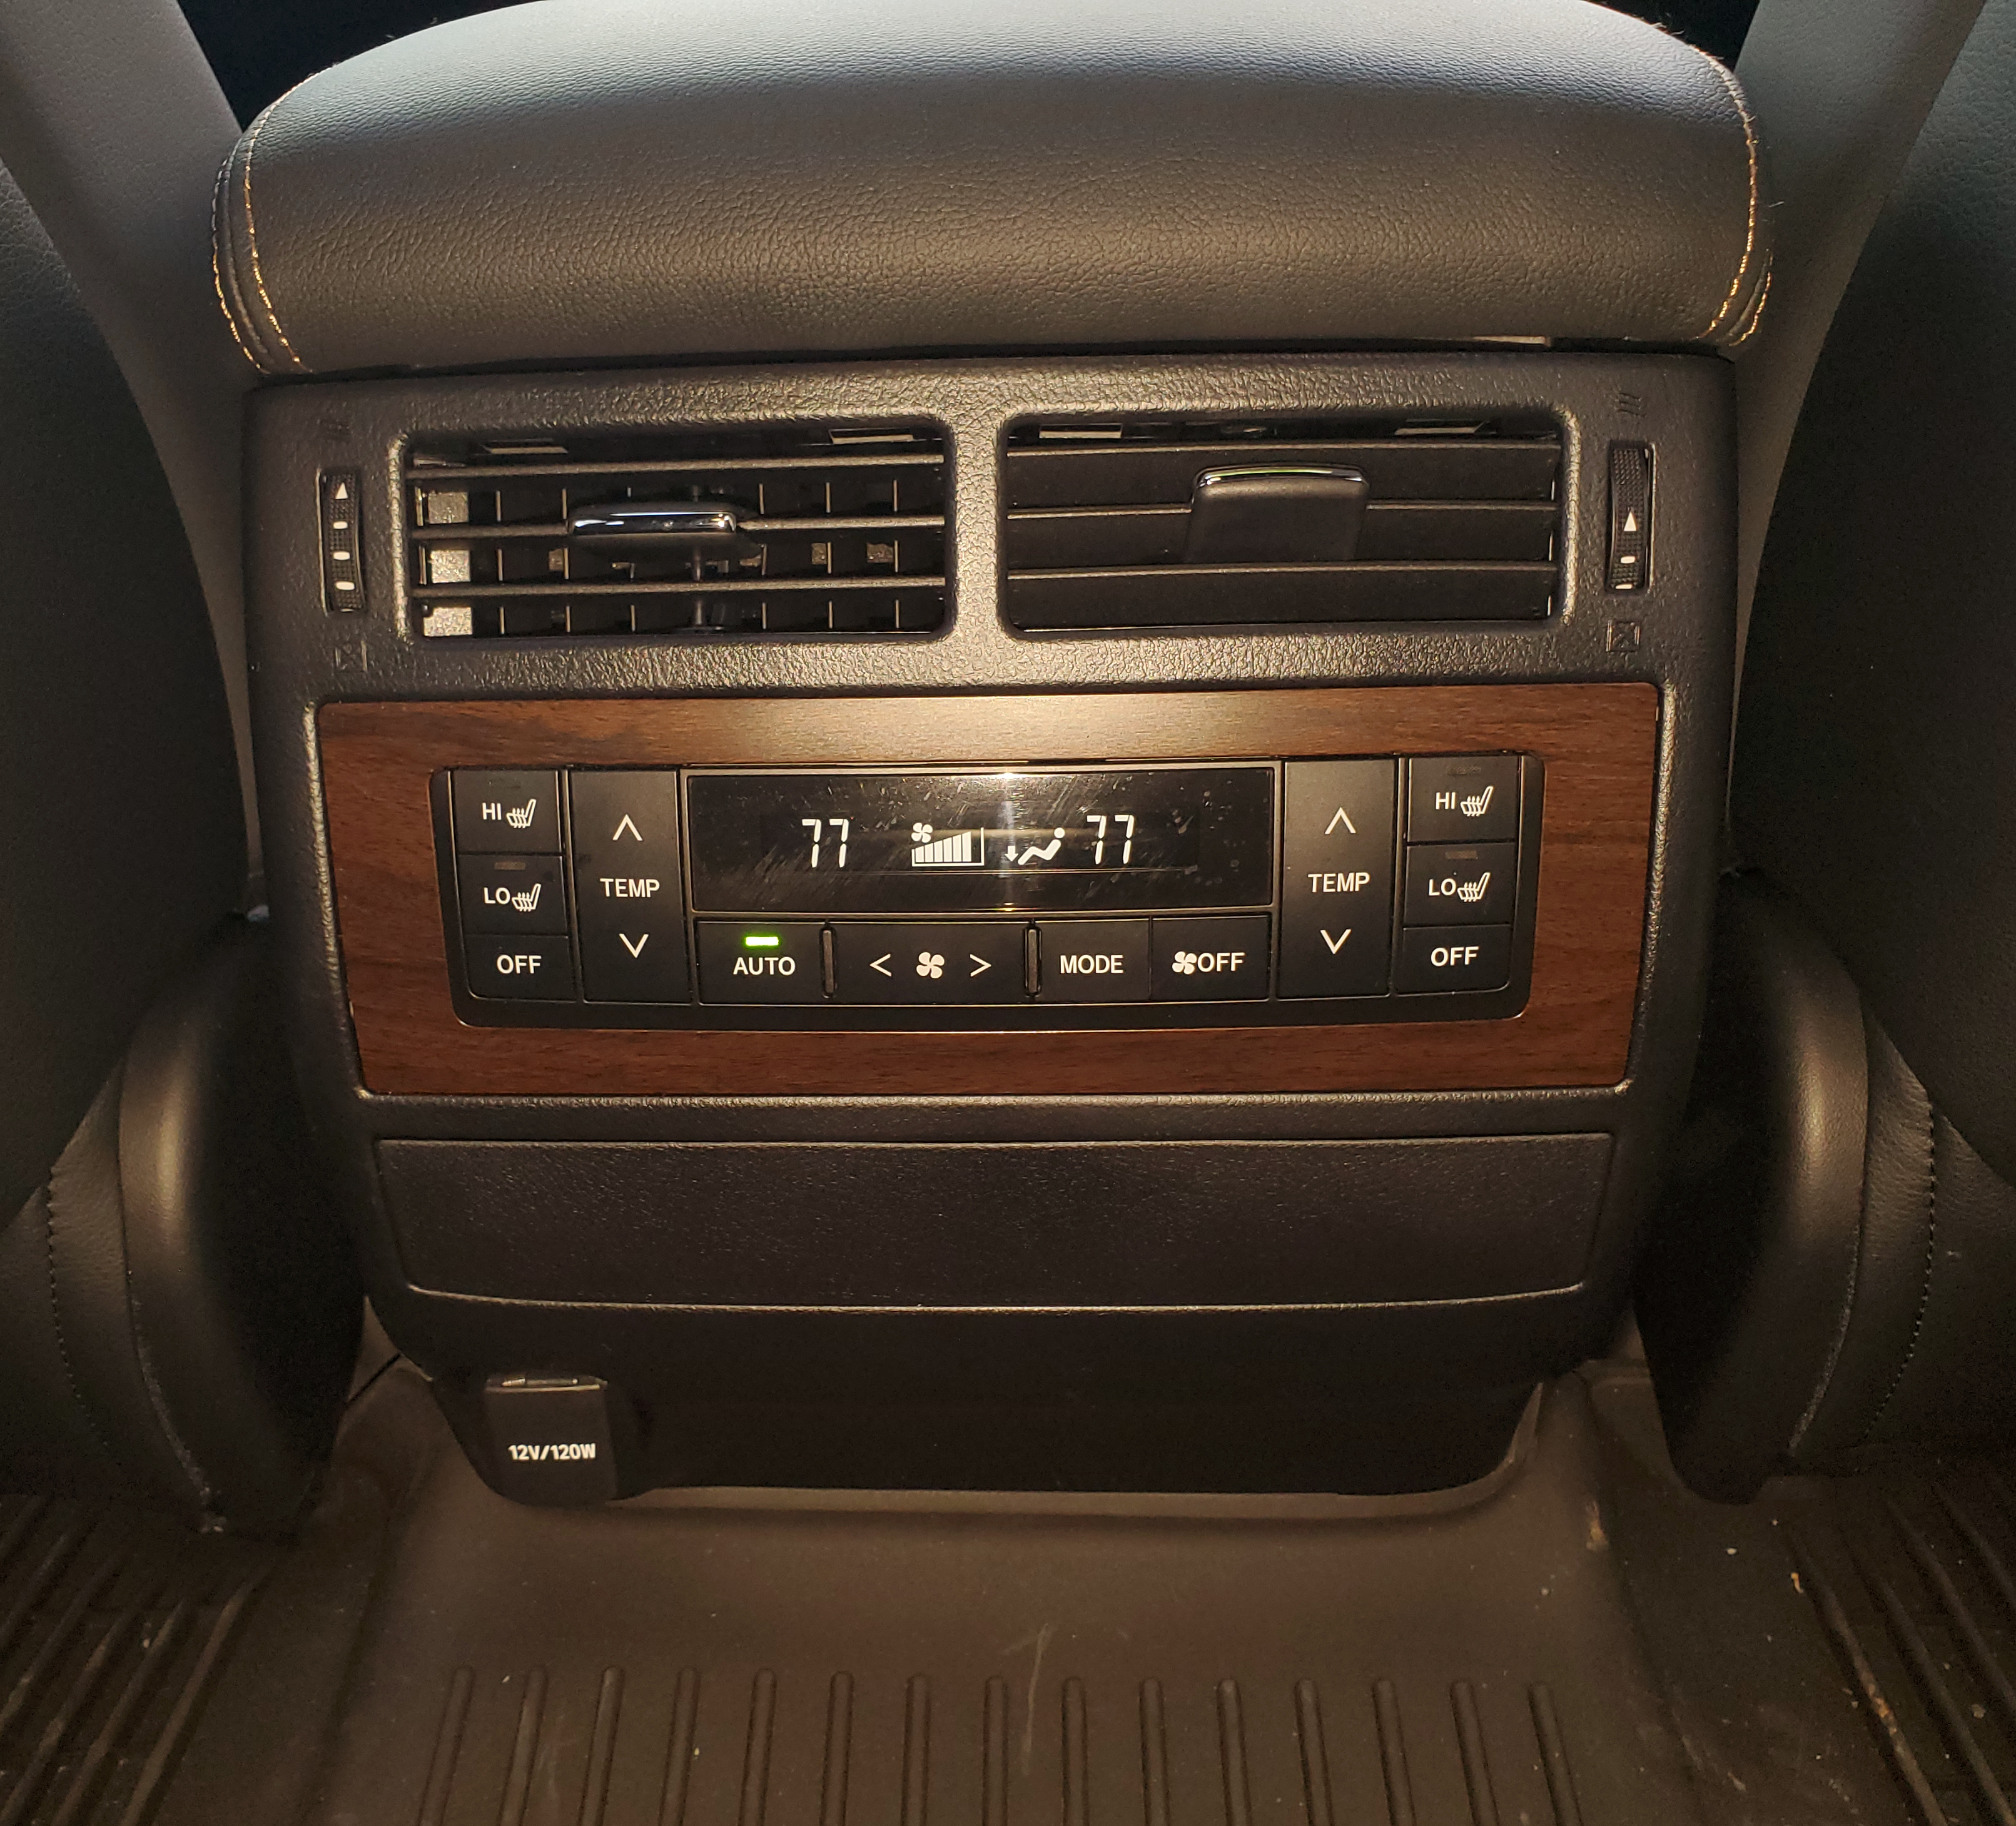 Toyota Land Cruiser 2nd row HVAC controls and 12 Volt outlet